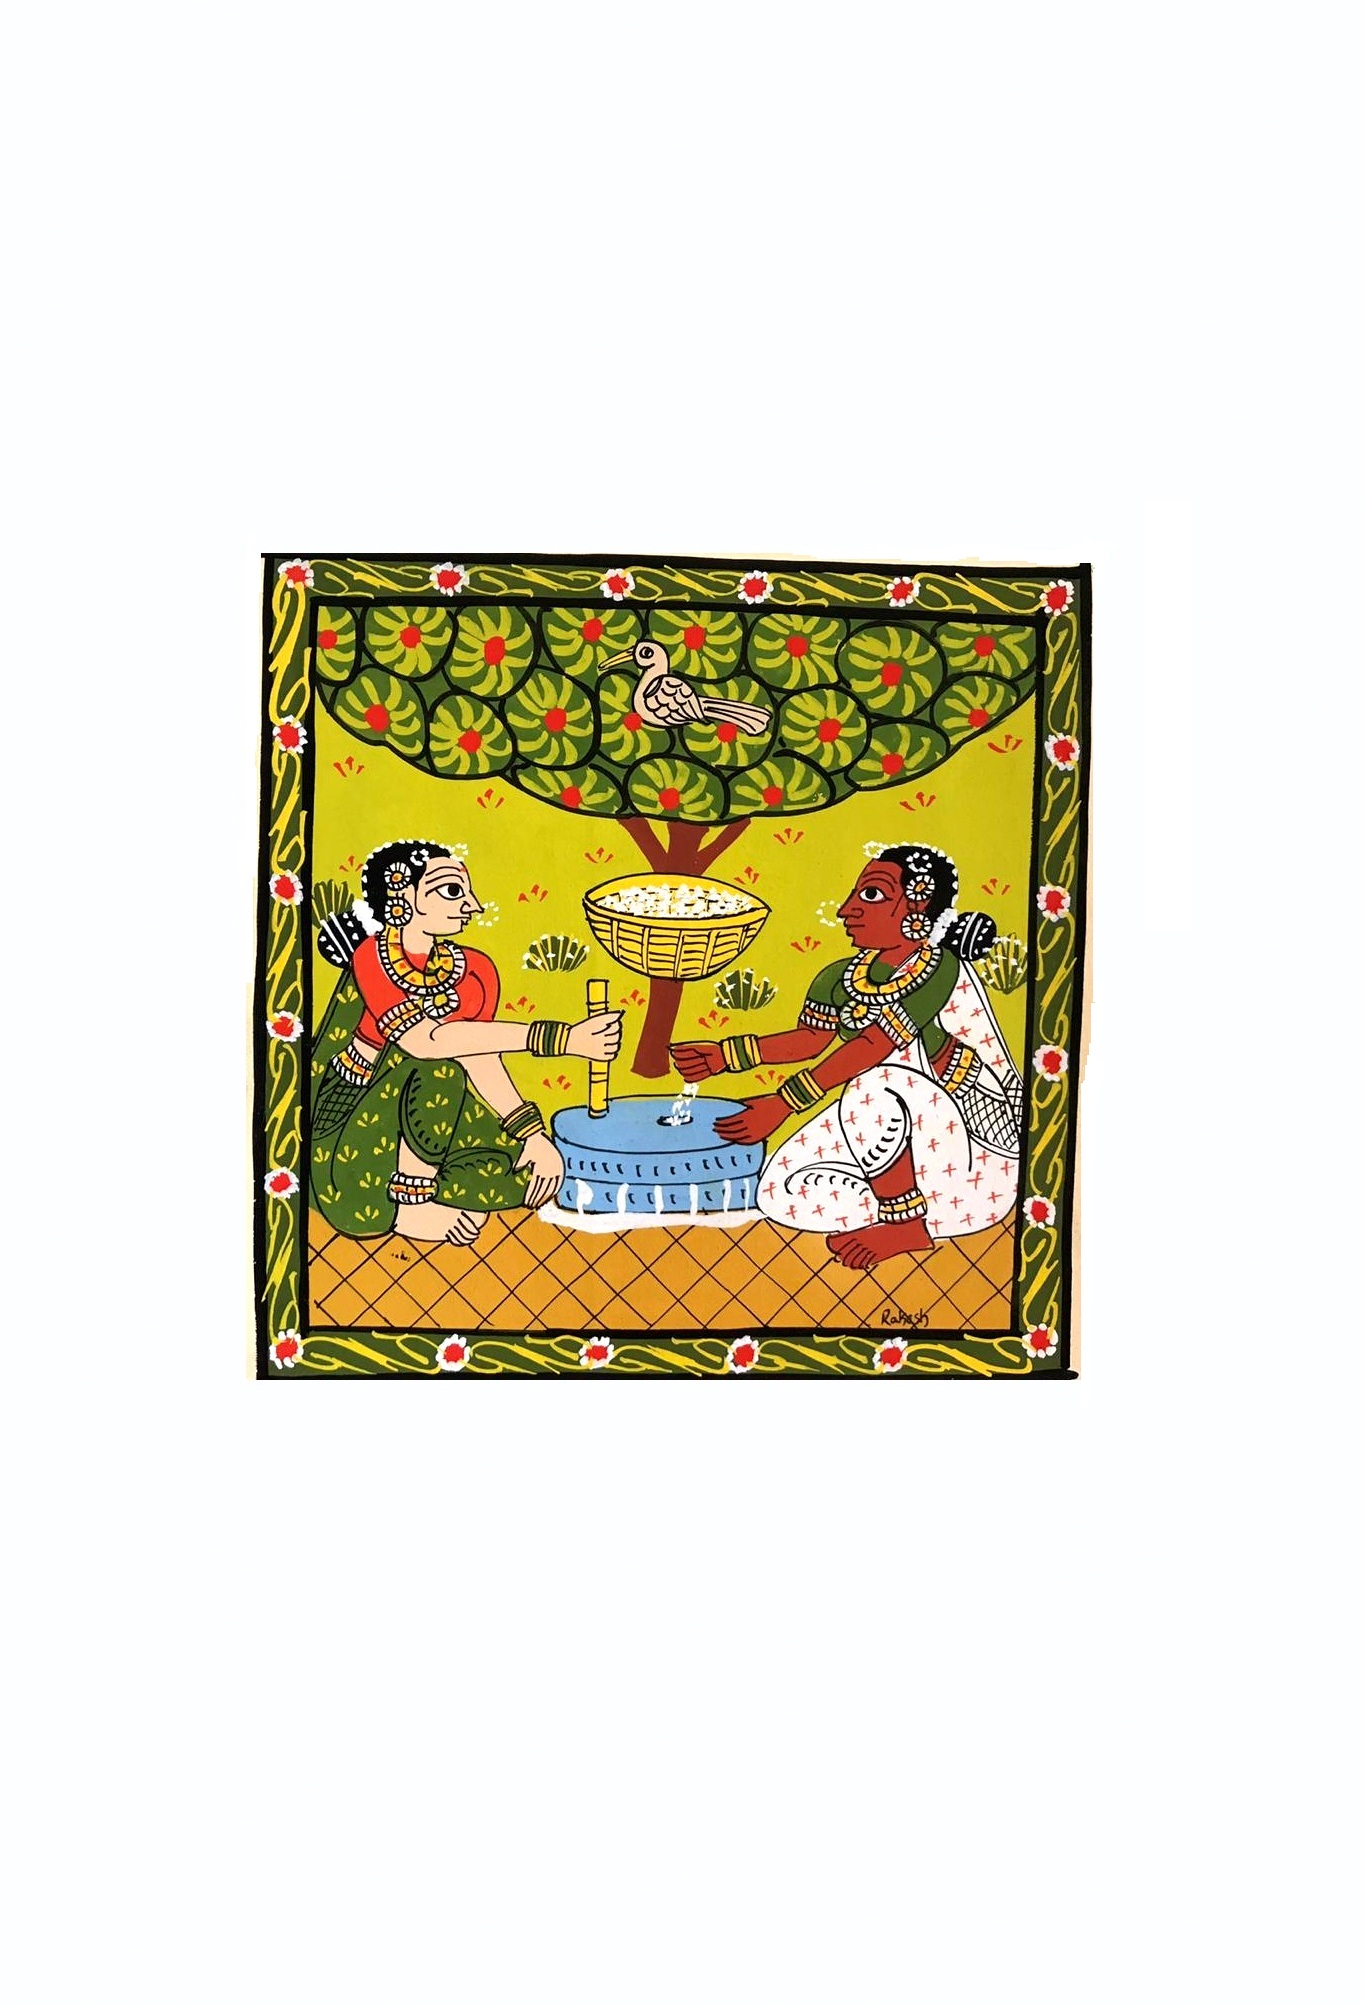 Women at Work in Cheriyal Painting